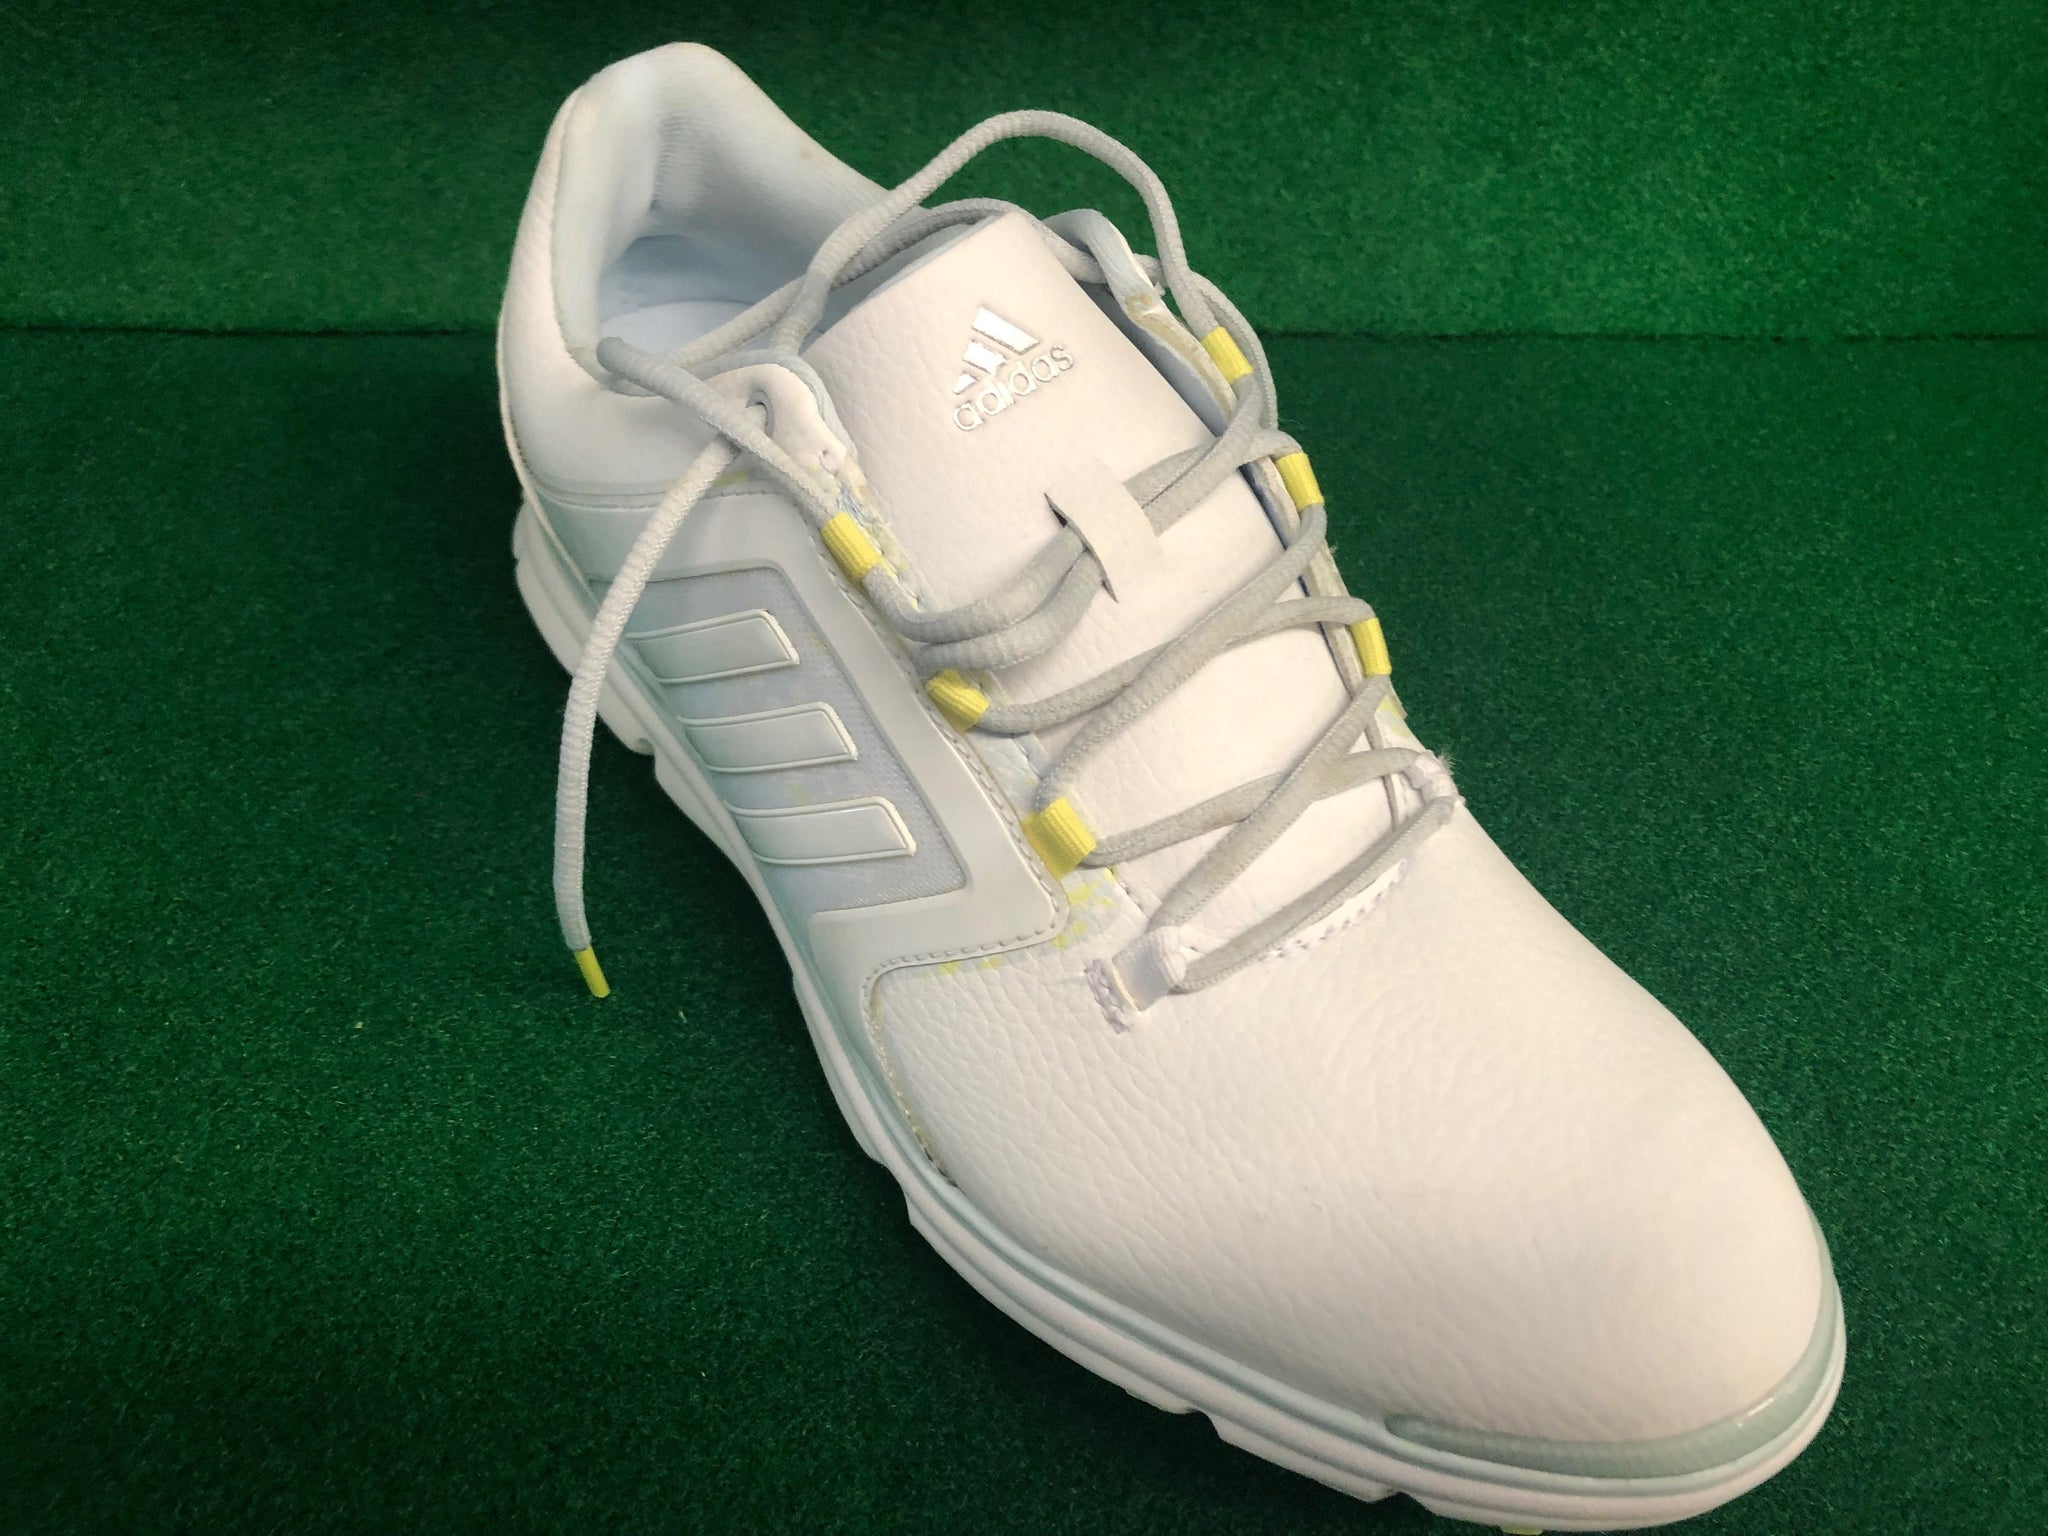 Women's Addidas Tour Golf Shoes